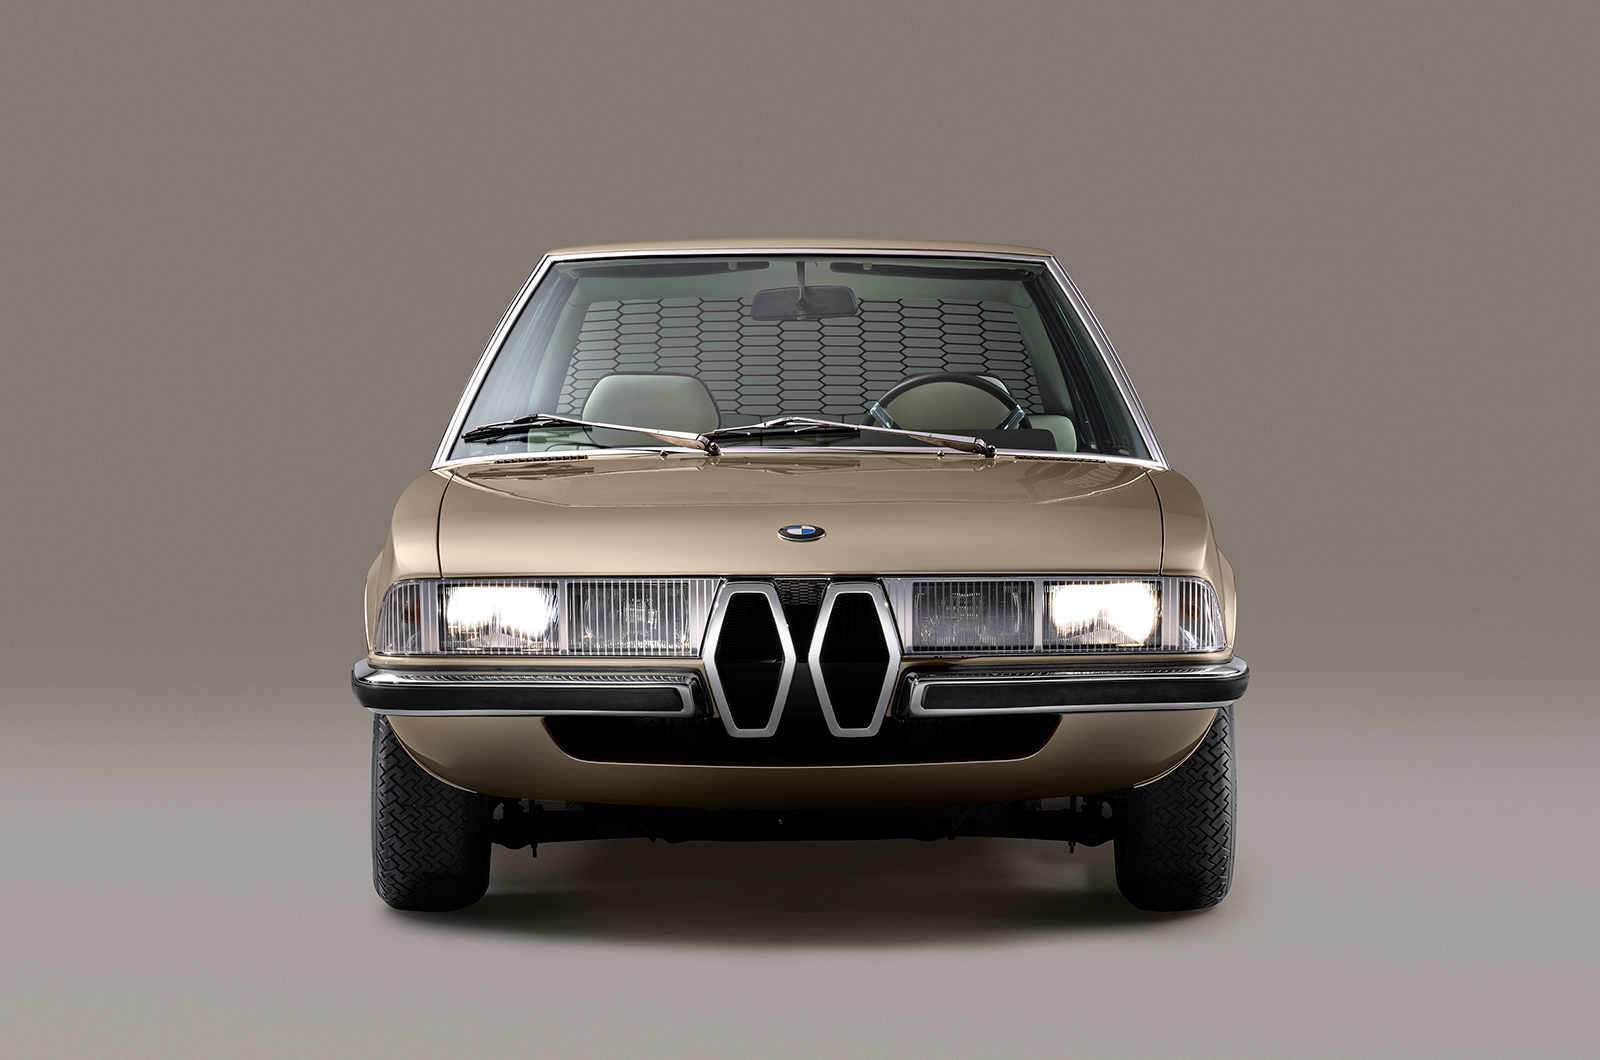 Design Legend Gandini's Lost BMW Concept Has Been Reborn | Classic & Sports Car